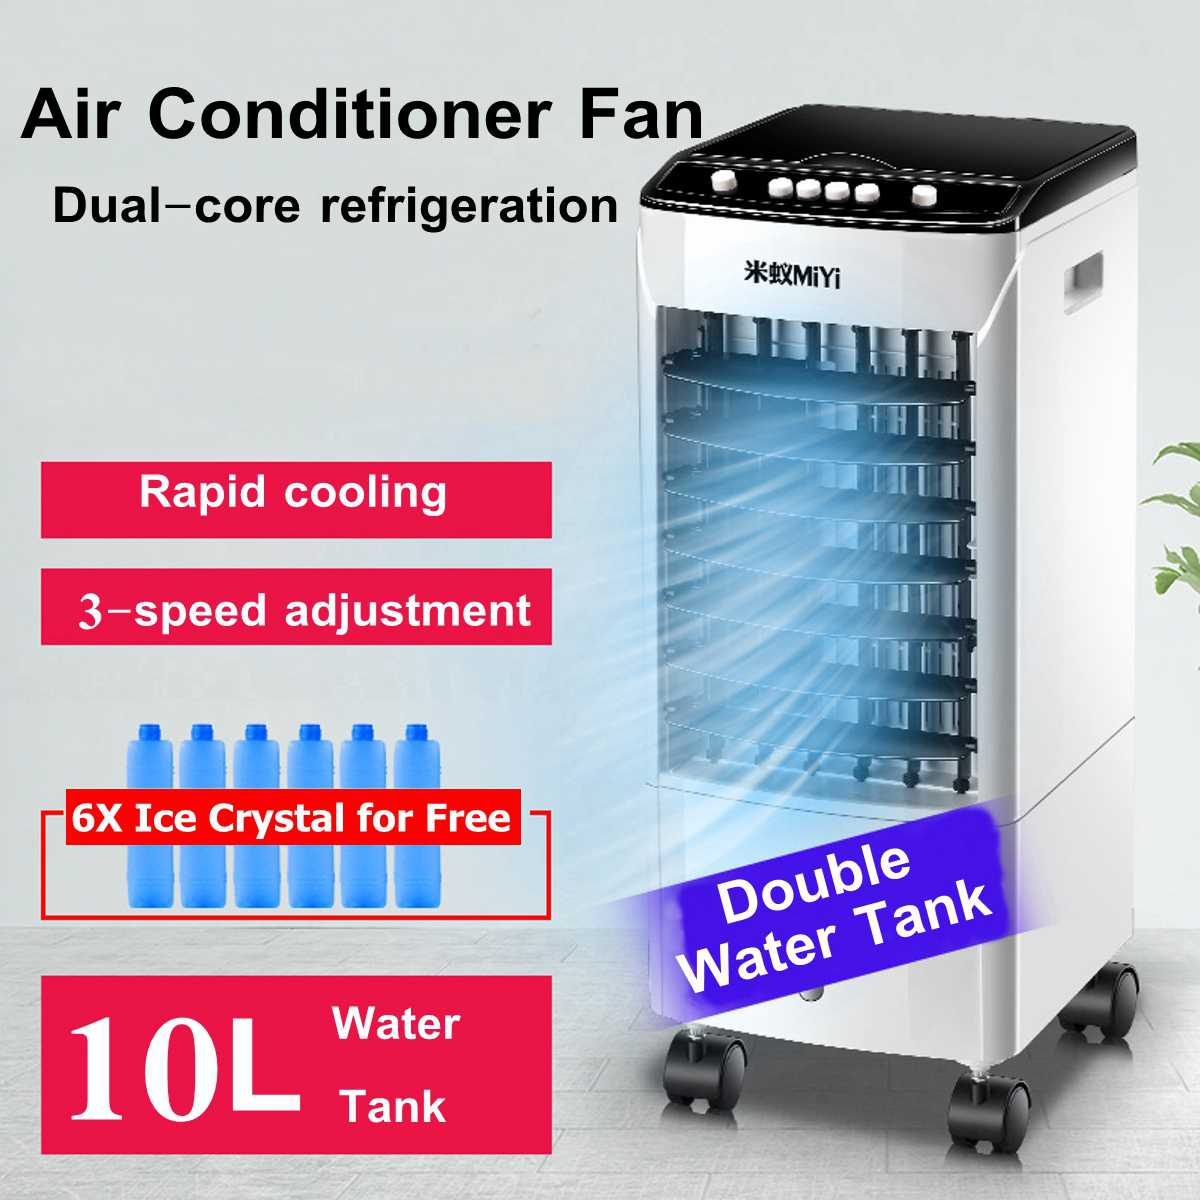 10L 220V Tank Home Water Mobile Portable Air Conditioner Conditioning Fan Humidifier Cooler Cooling  Timer +6 Ice Crystal